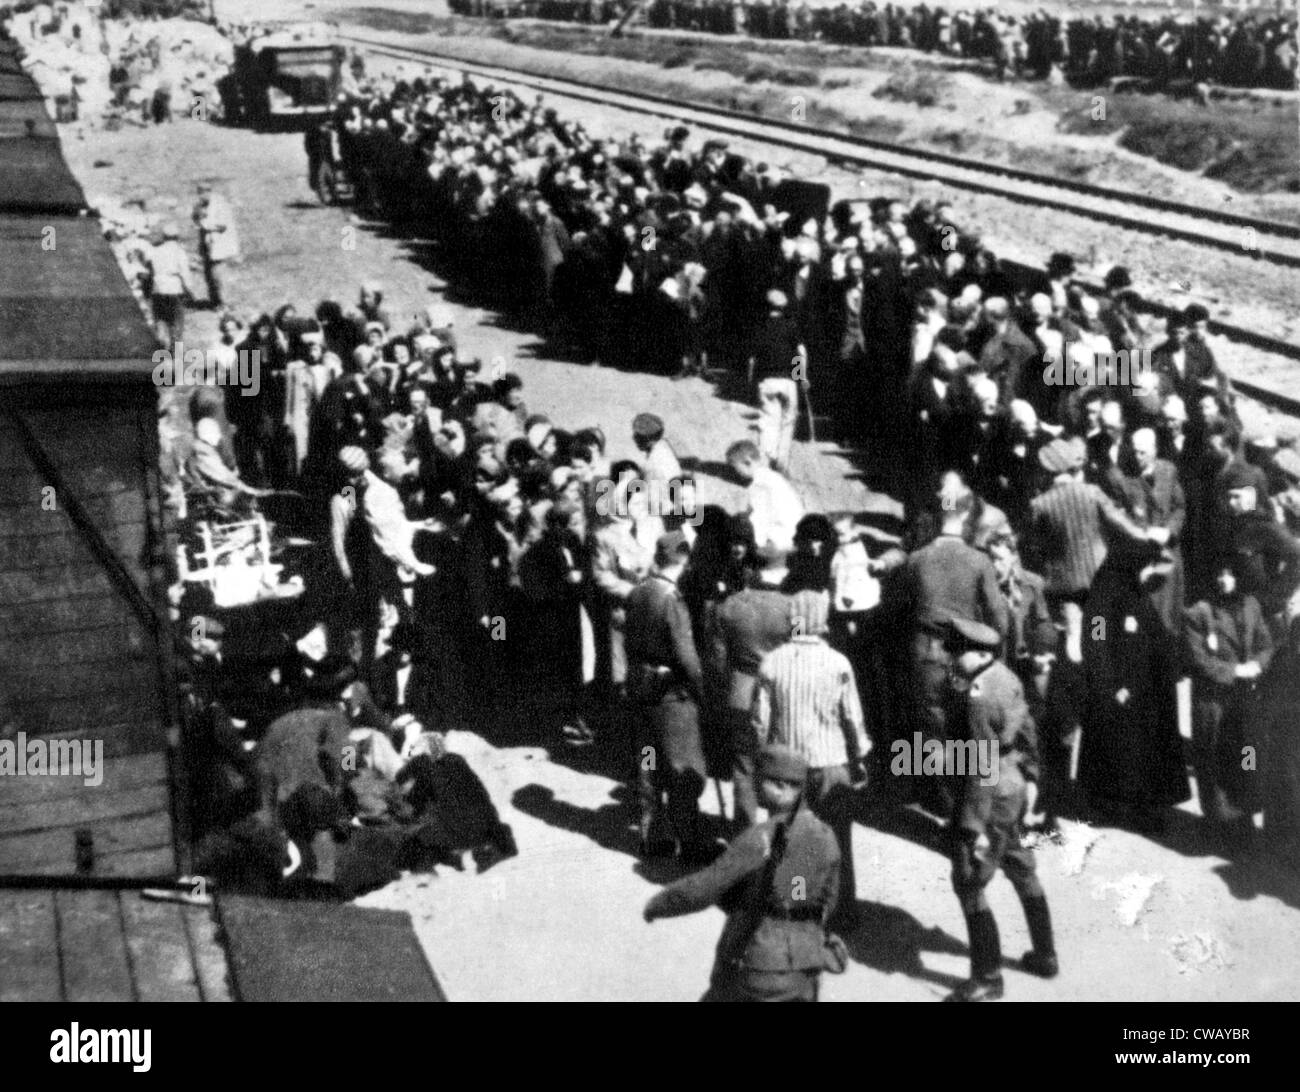 Selection and separation of prisoners at the Auschwitz-Birkenau concentration camp railway station in Poland, ca. - Stock Image